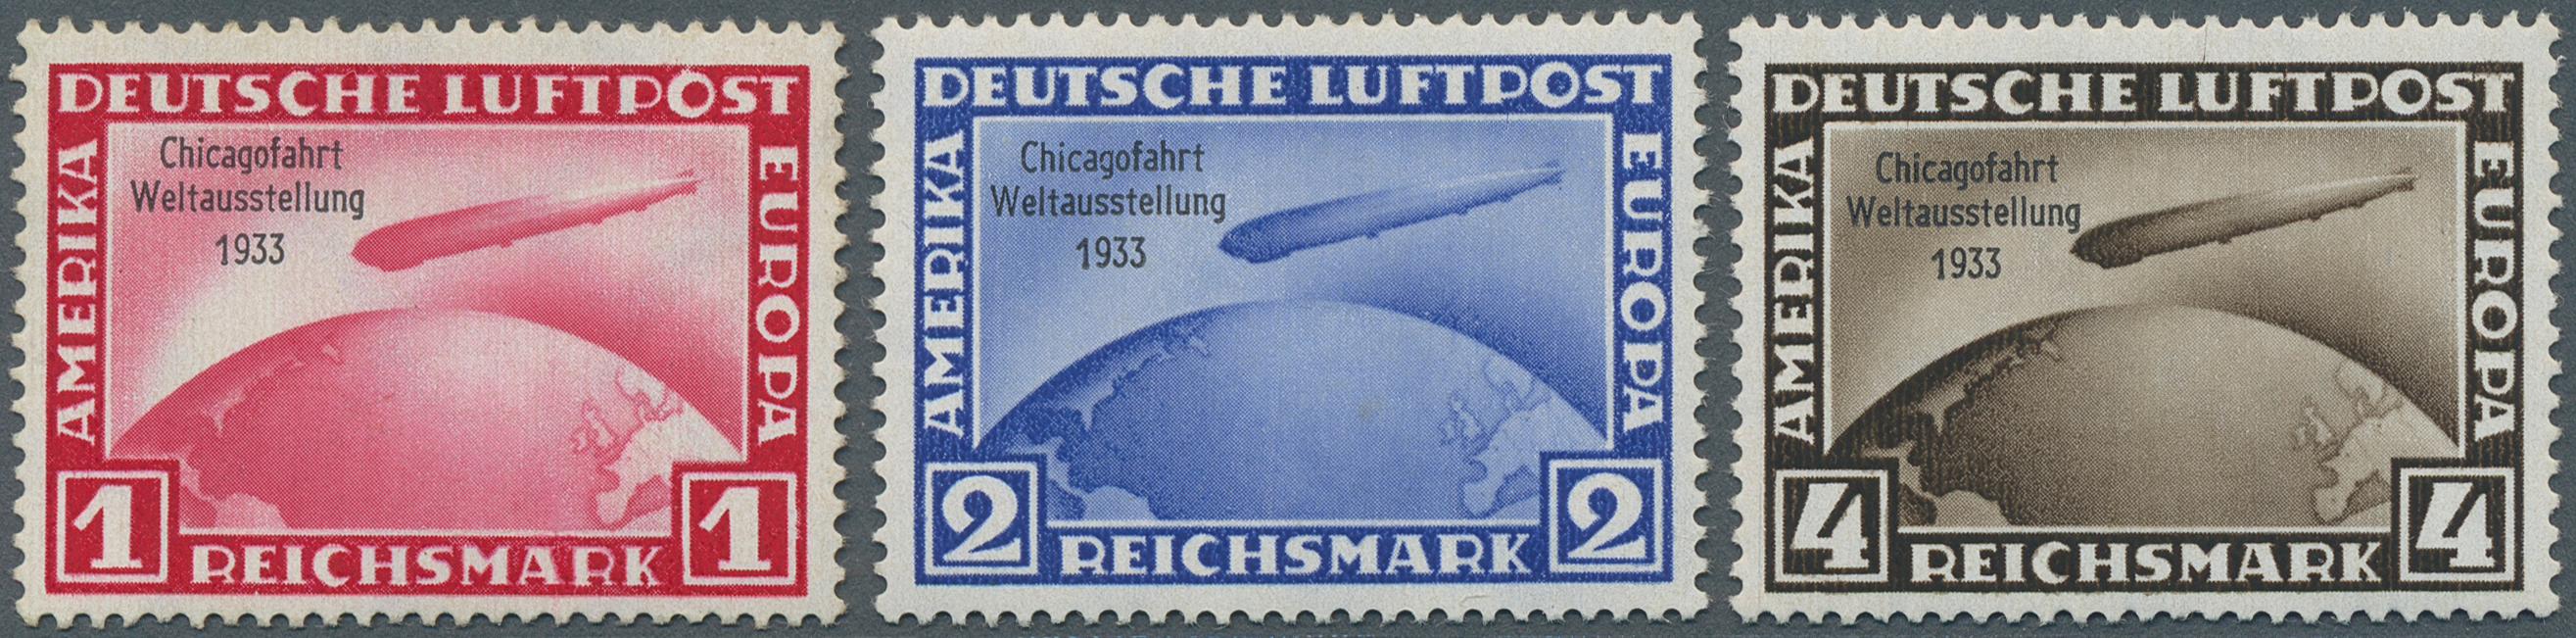 Lot 36693 - Deutsches Reich - 3. Reich  -  Auktionshaus Christoph Gärtner GmbH & Co. KG Sale #44 Collections Germany